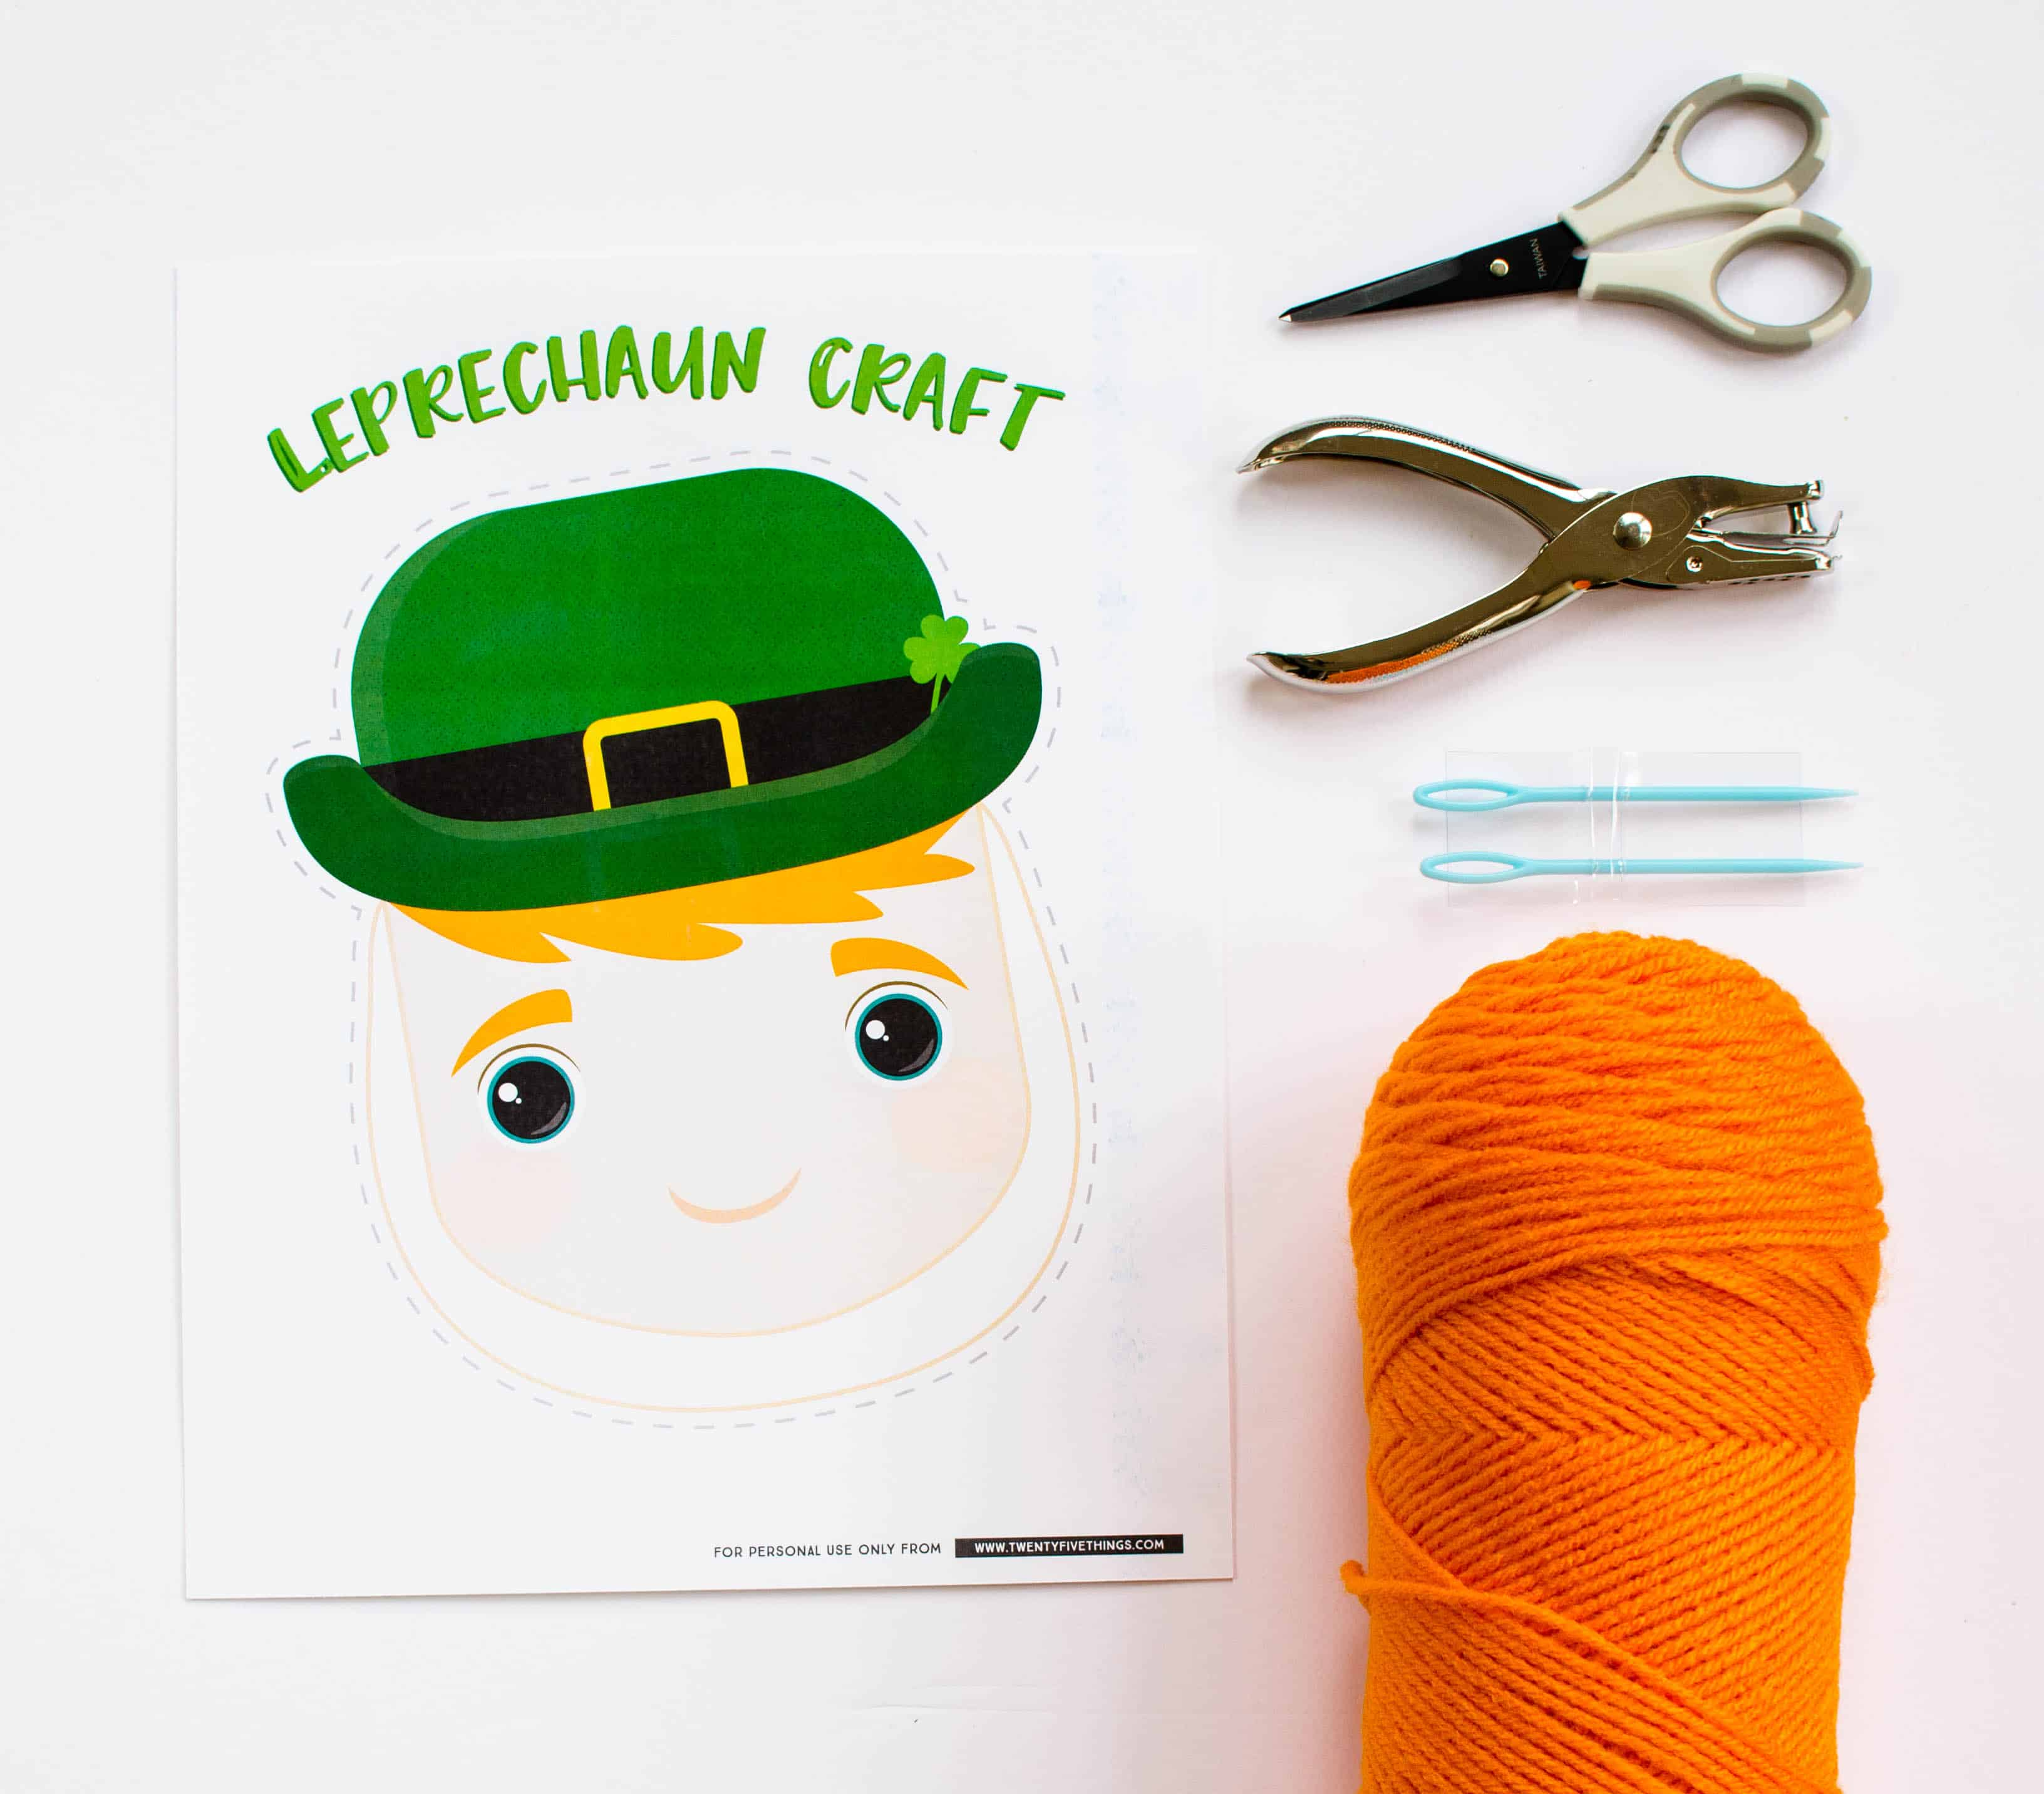 For this leprechaun craft, you'll need our printable, orange yarn, plastic sewing needles, a hole punch, and scissors.